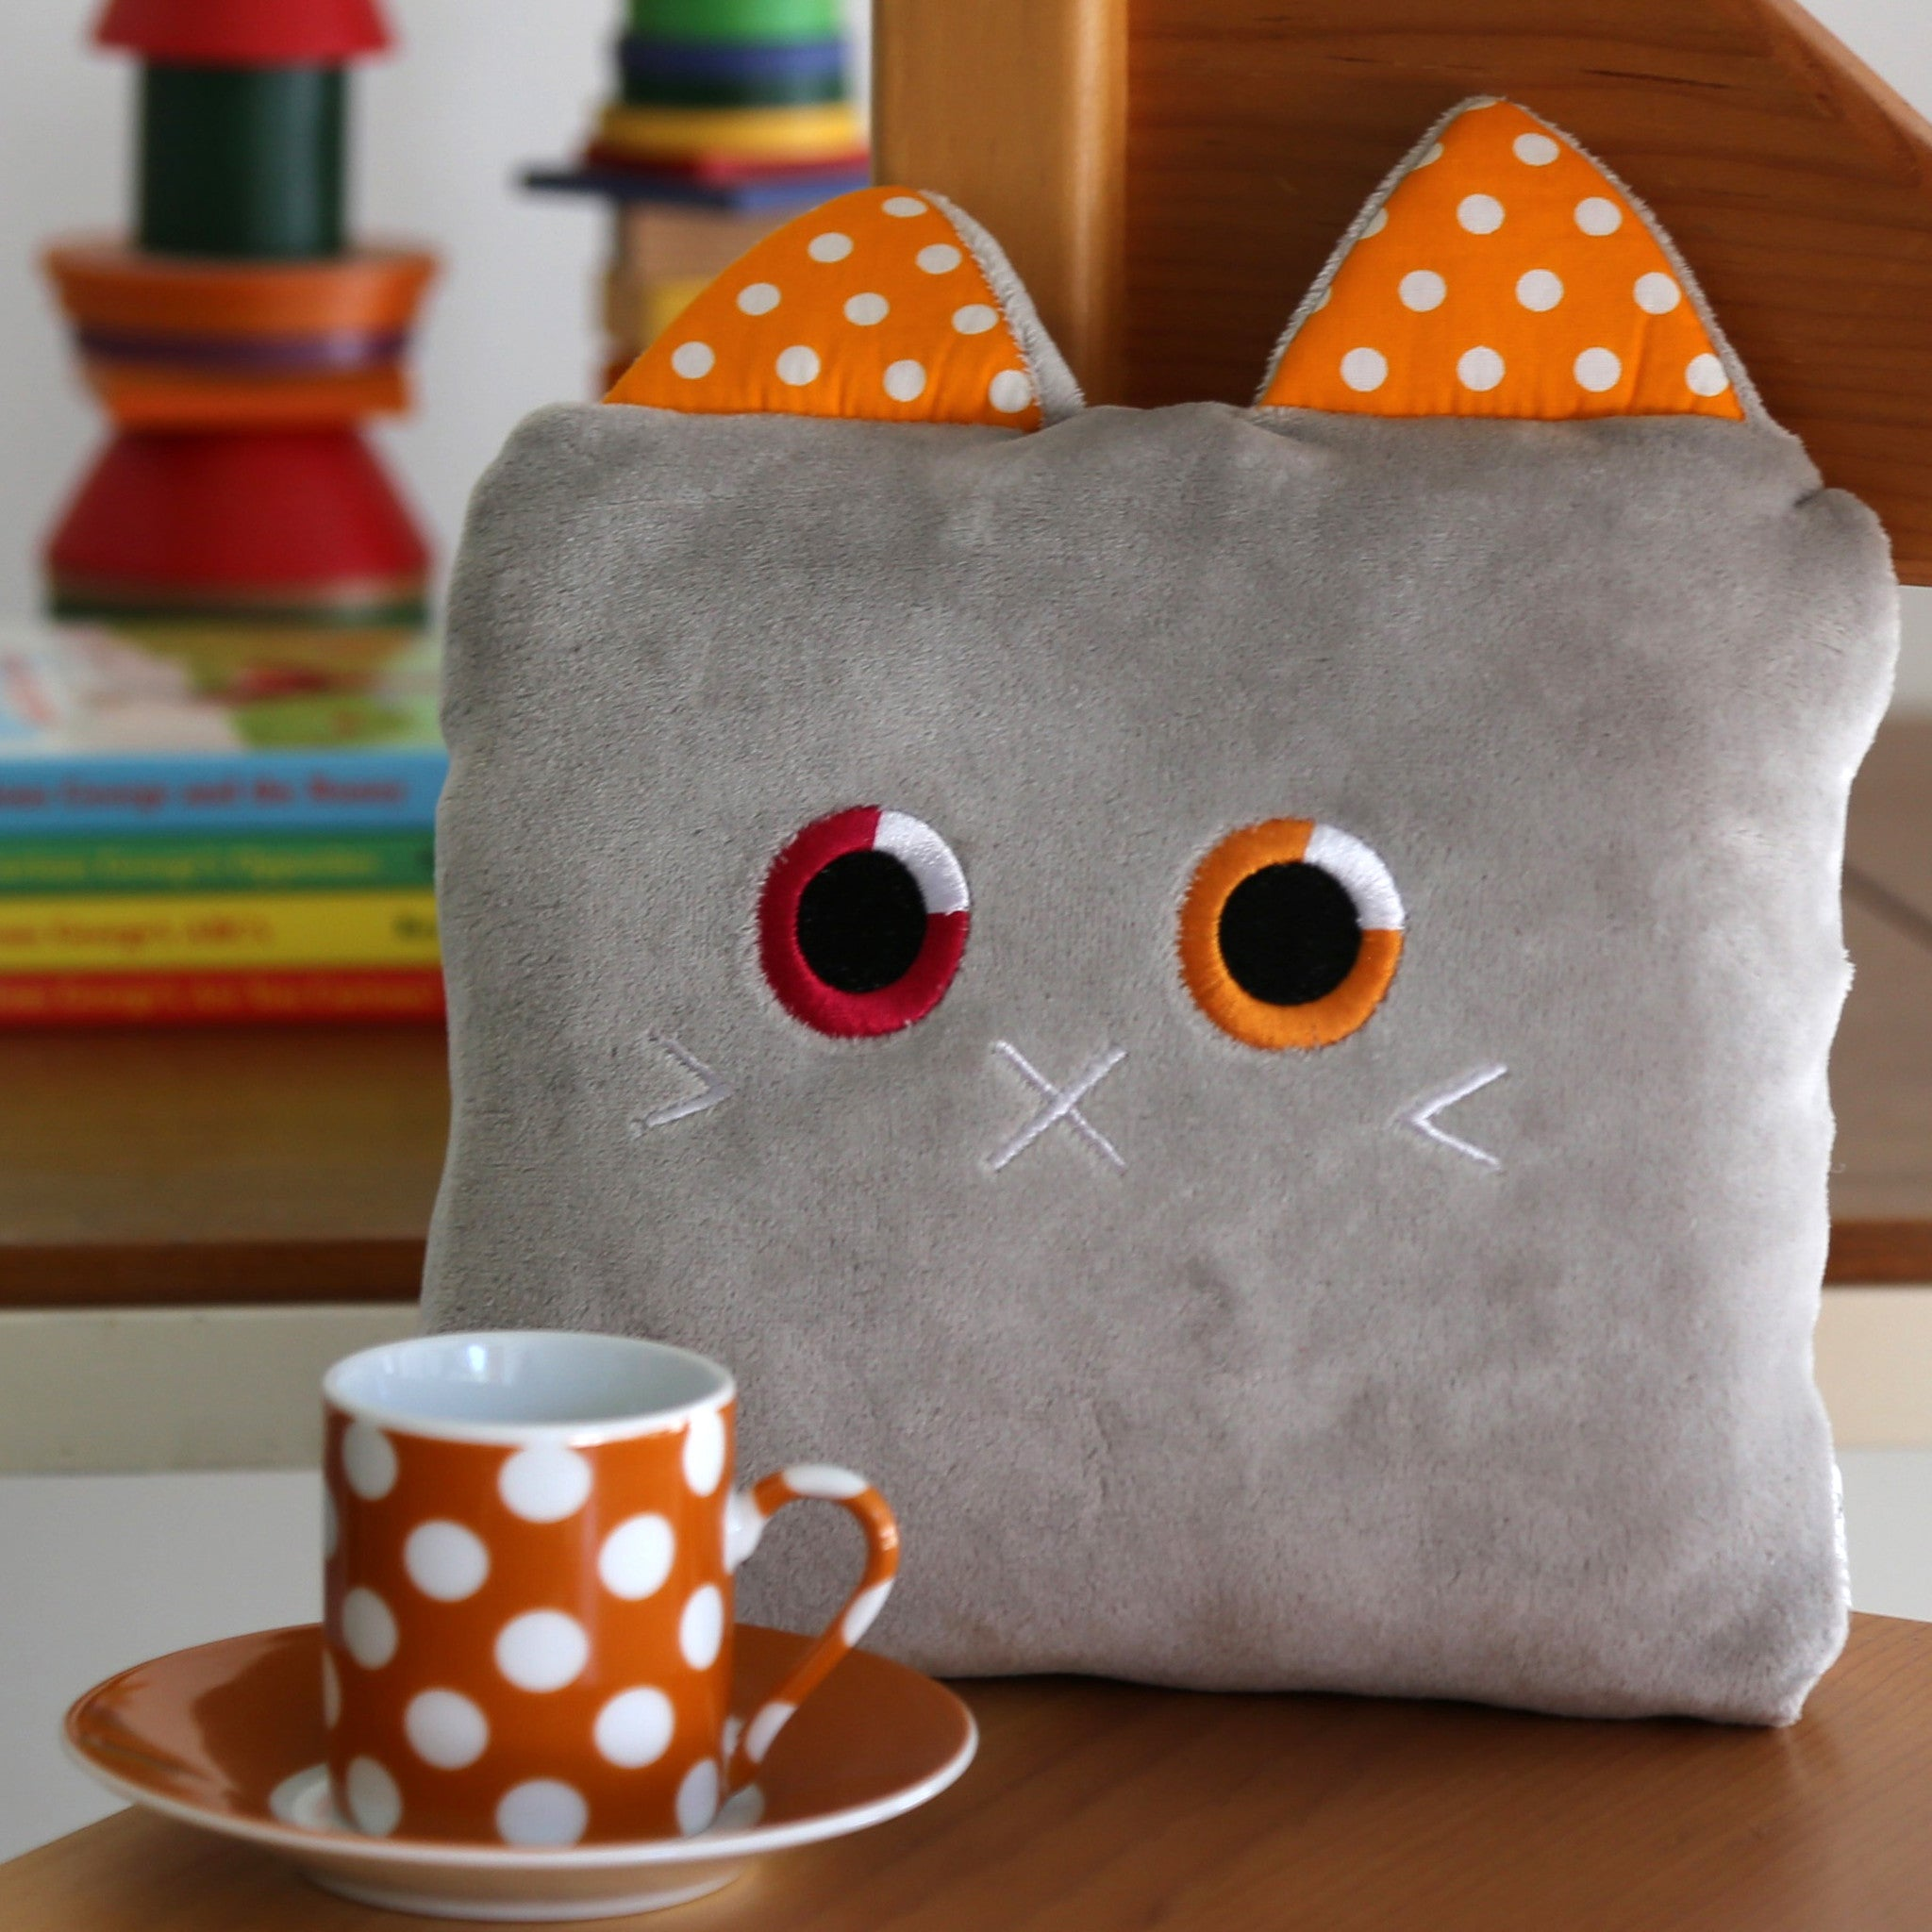 Poketti Kitty Cat Plush Pillow with a Pocket - A perfect gift